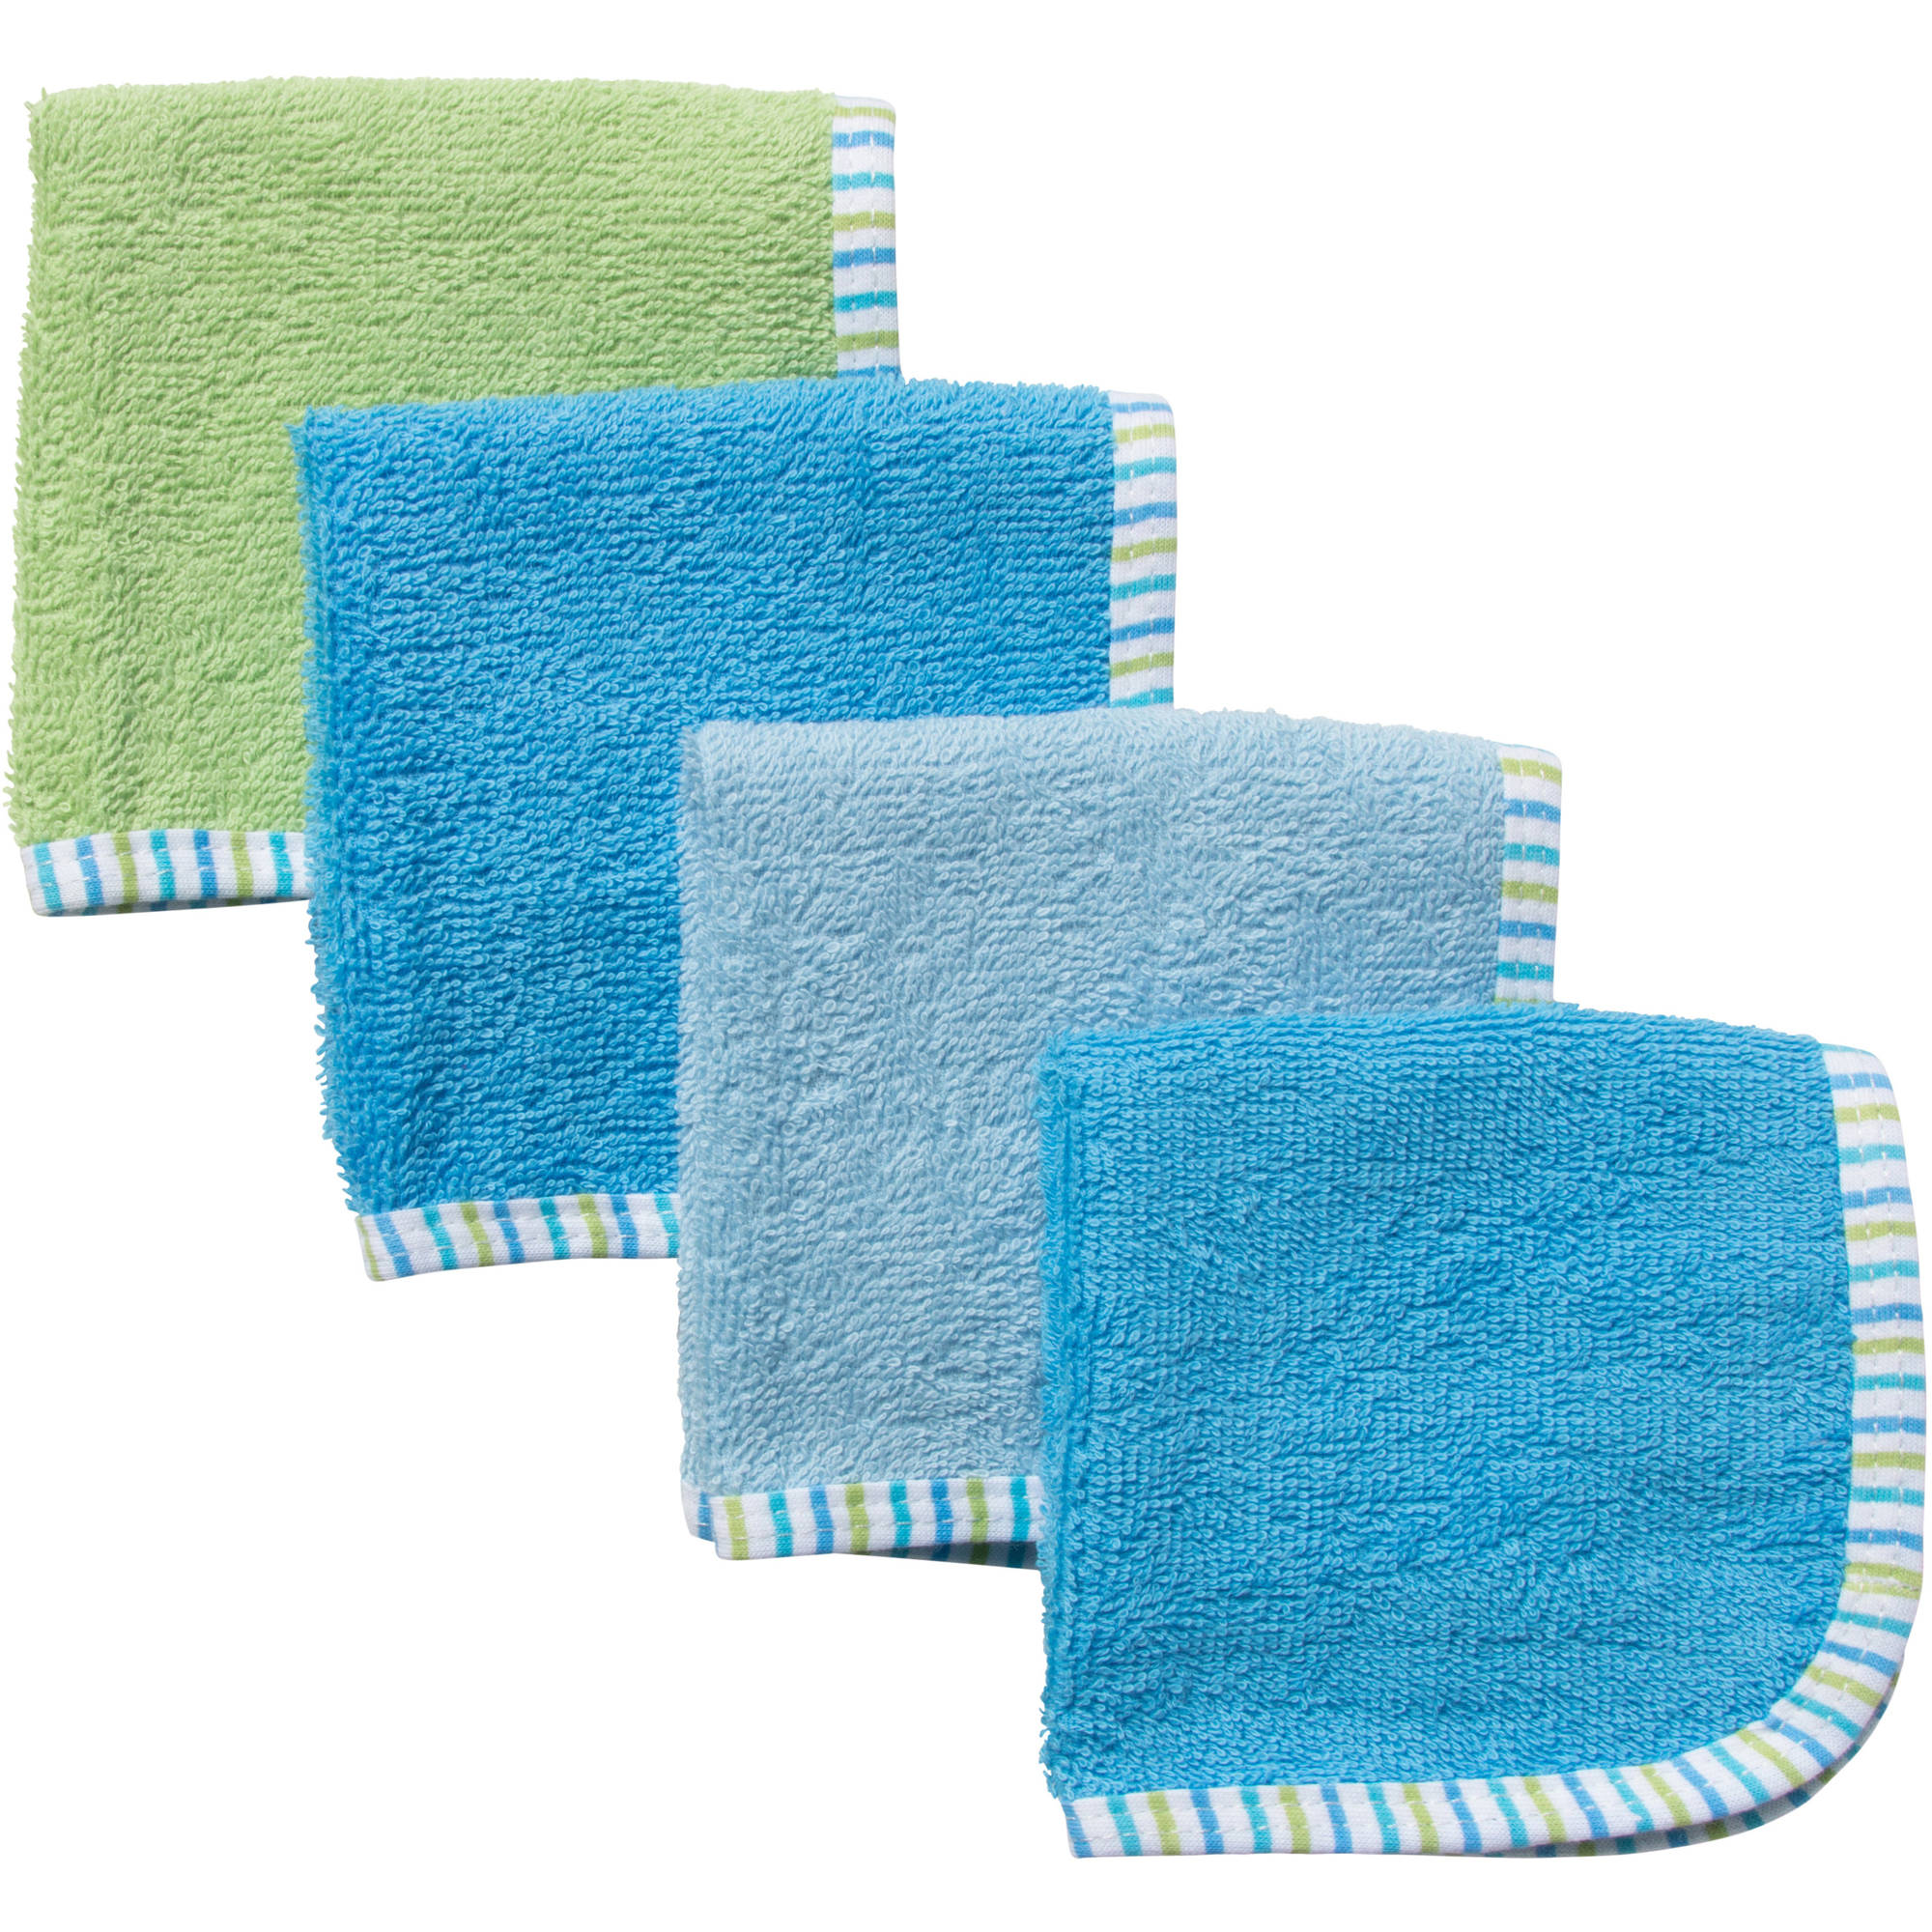 Gerber Newborn Baby Boy Solid Woven Washcloths - 4 Pack